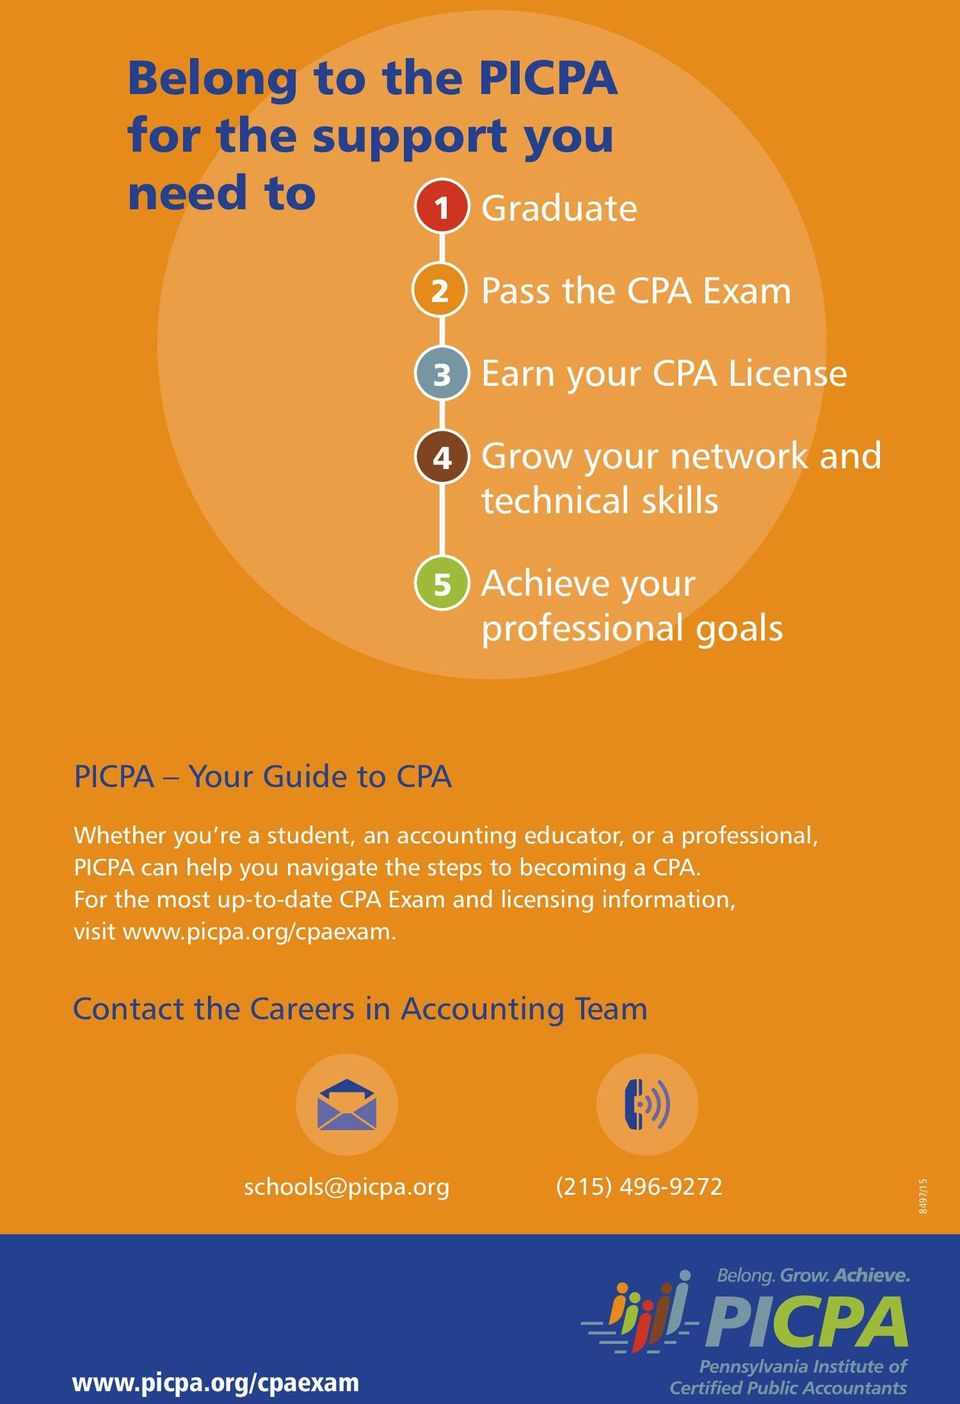 accounting educator, or a professional, PICPA can help you navigate the steps to becoming a CPA.